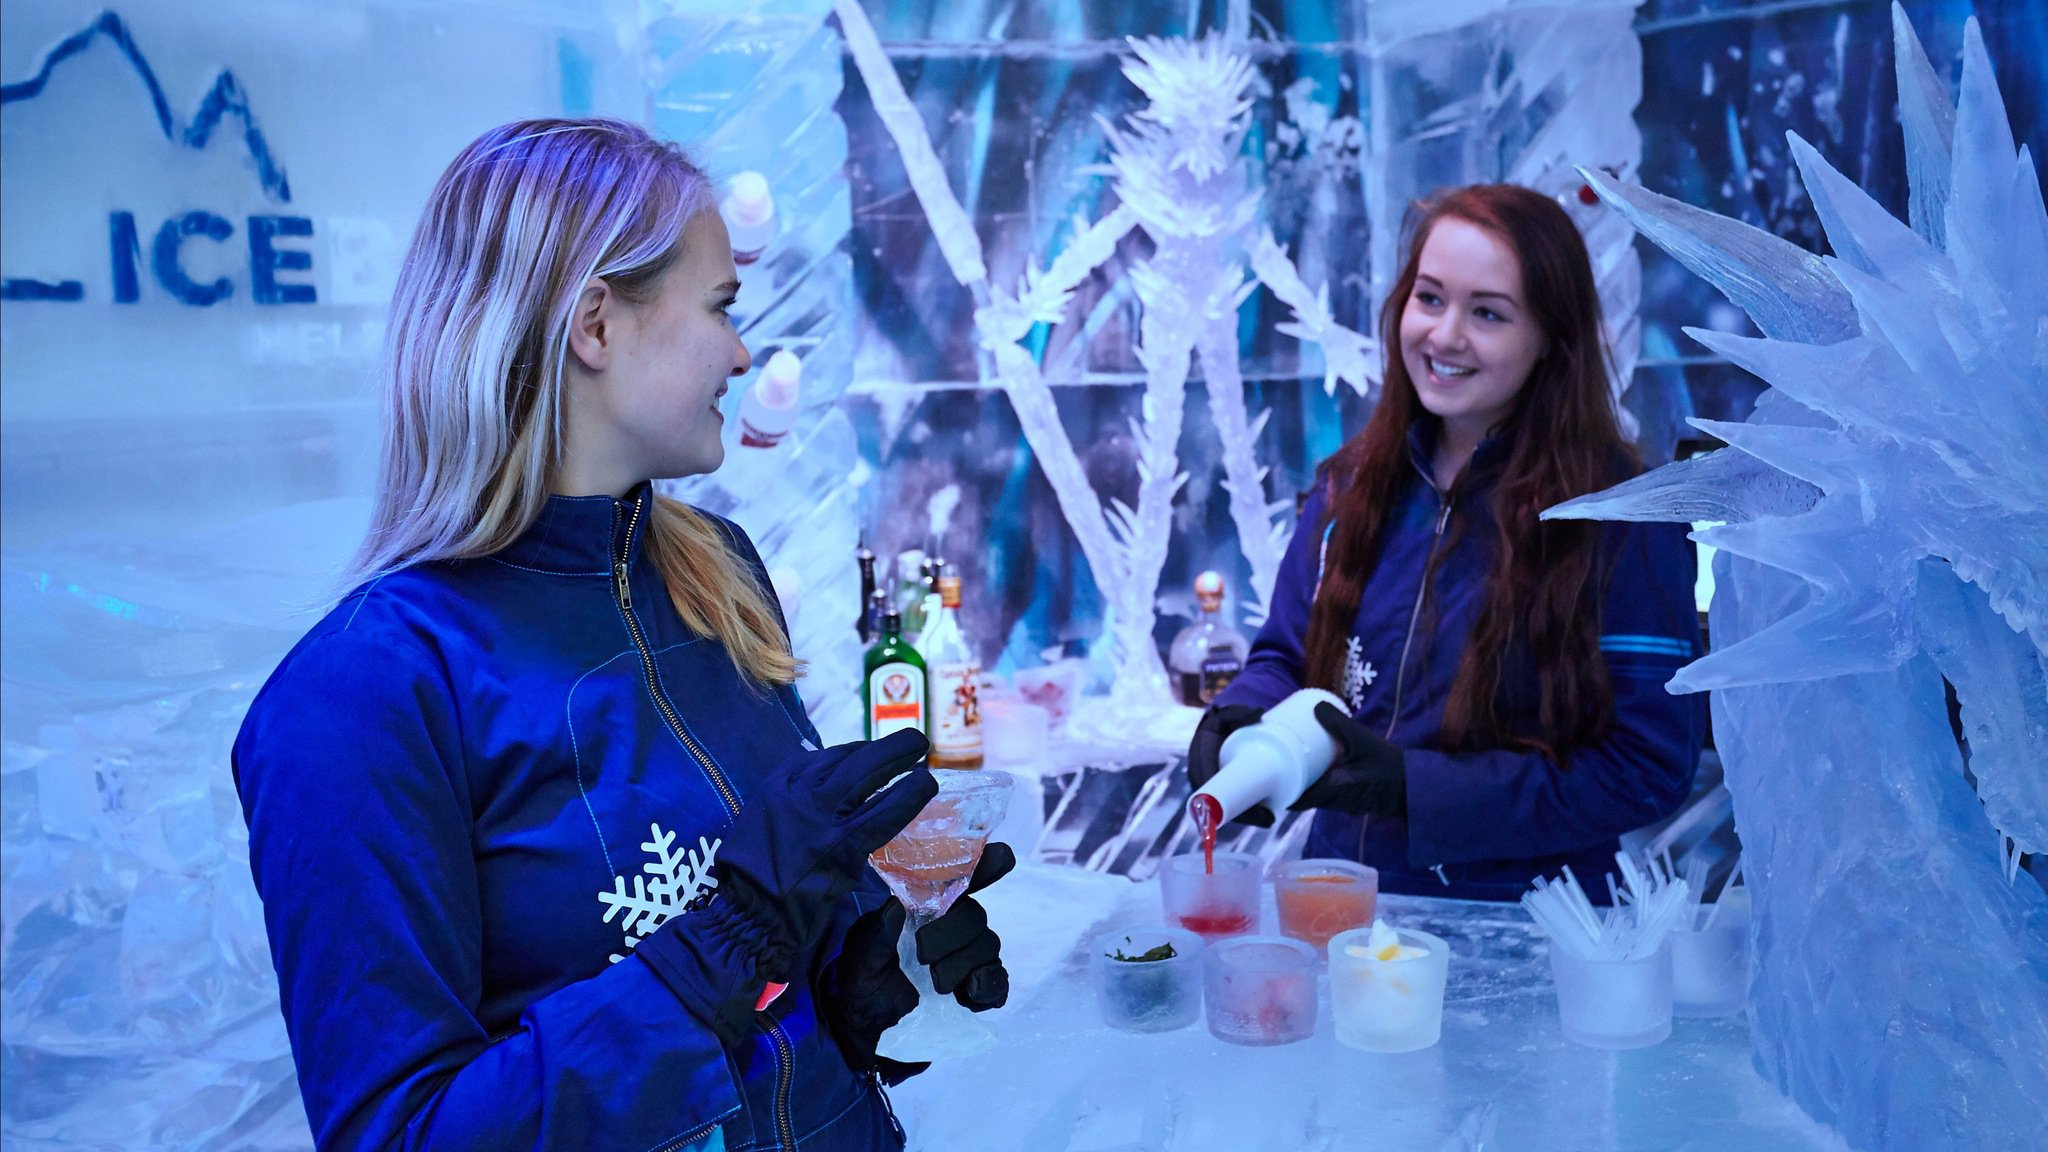 Icebar Melbourne Logo and Images